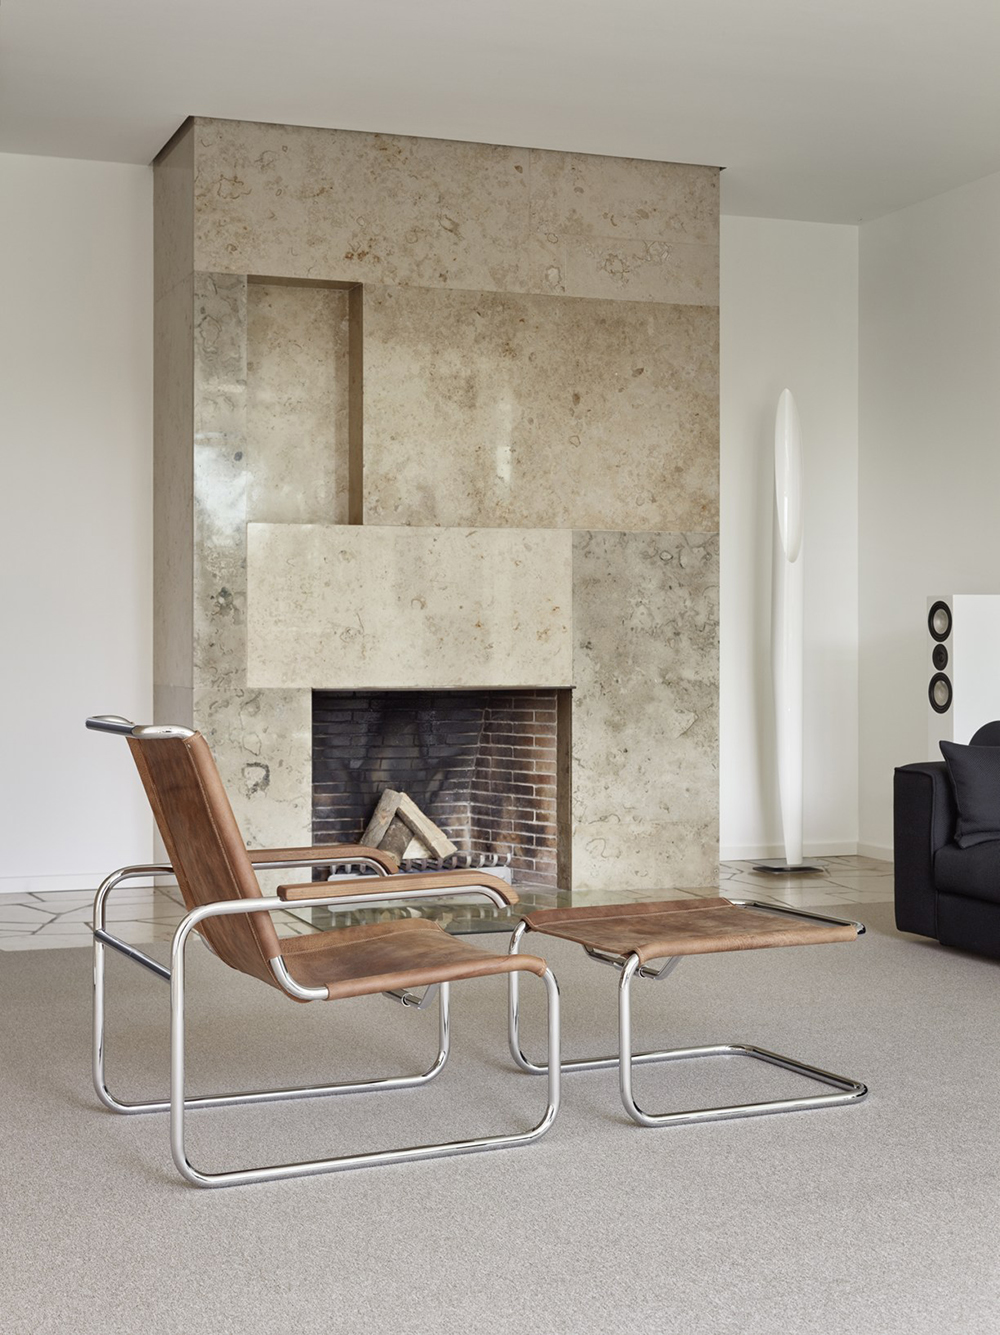 Marcel Breuer Harnischmacher Villa: Sunday Sanctuary